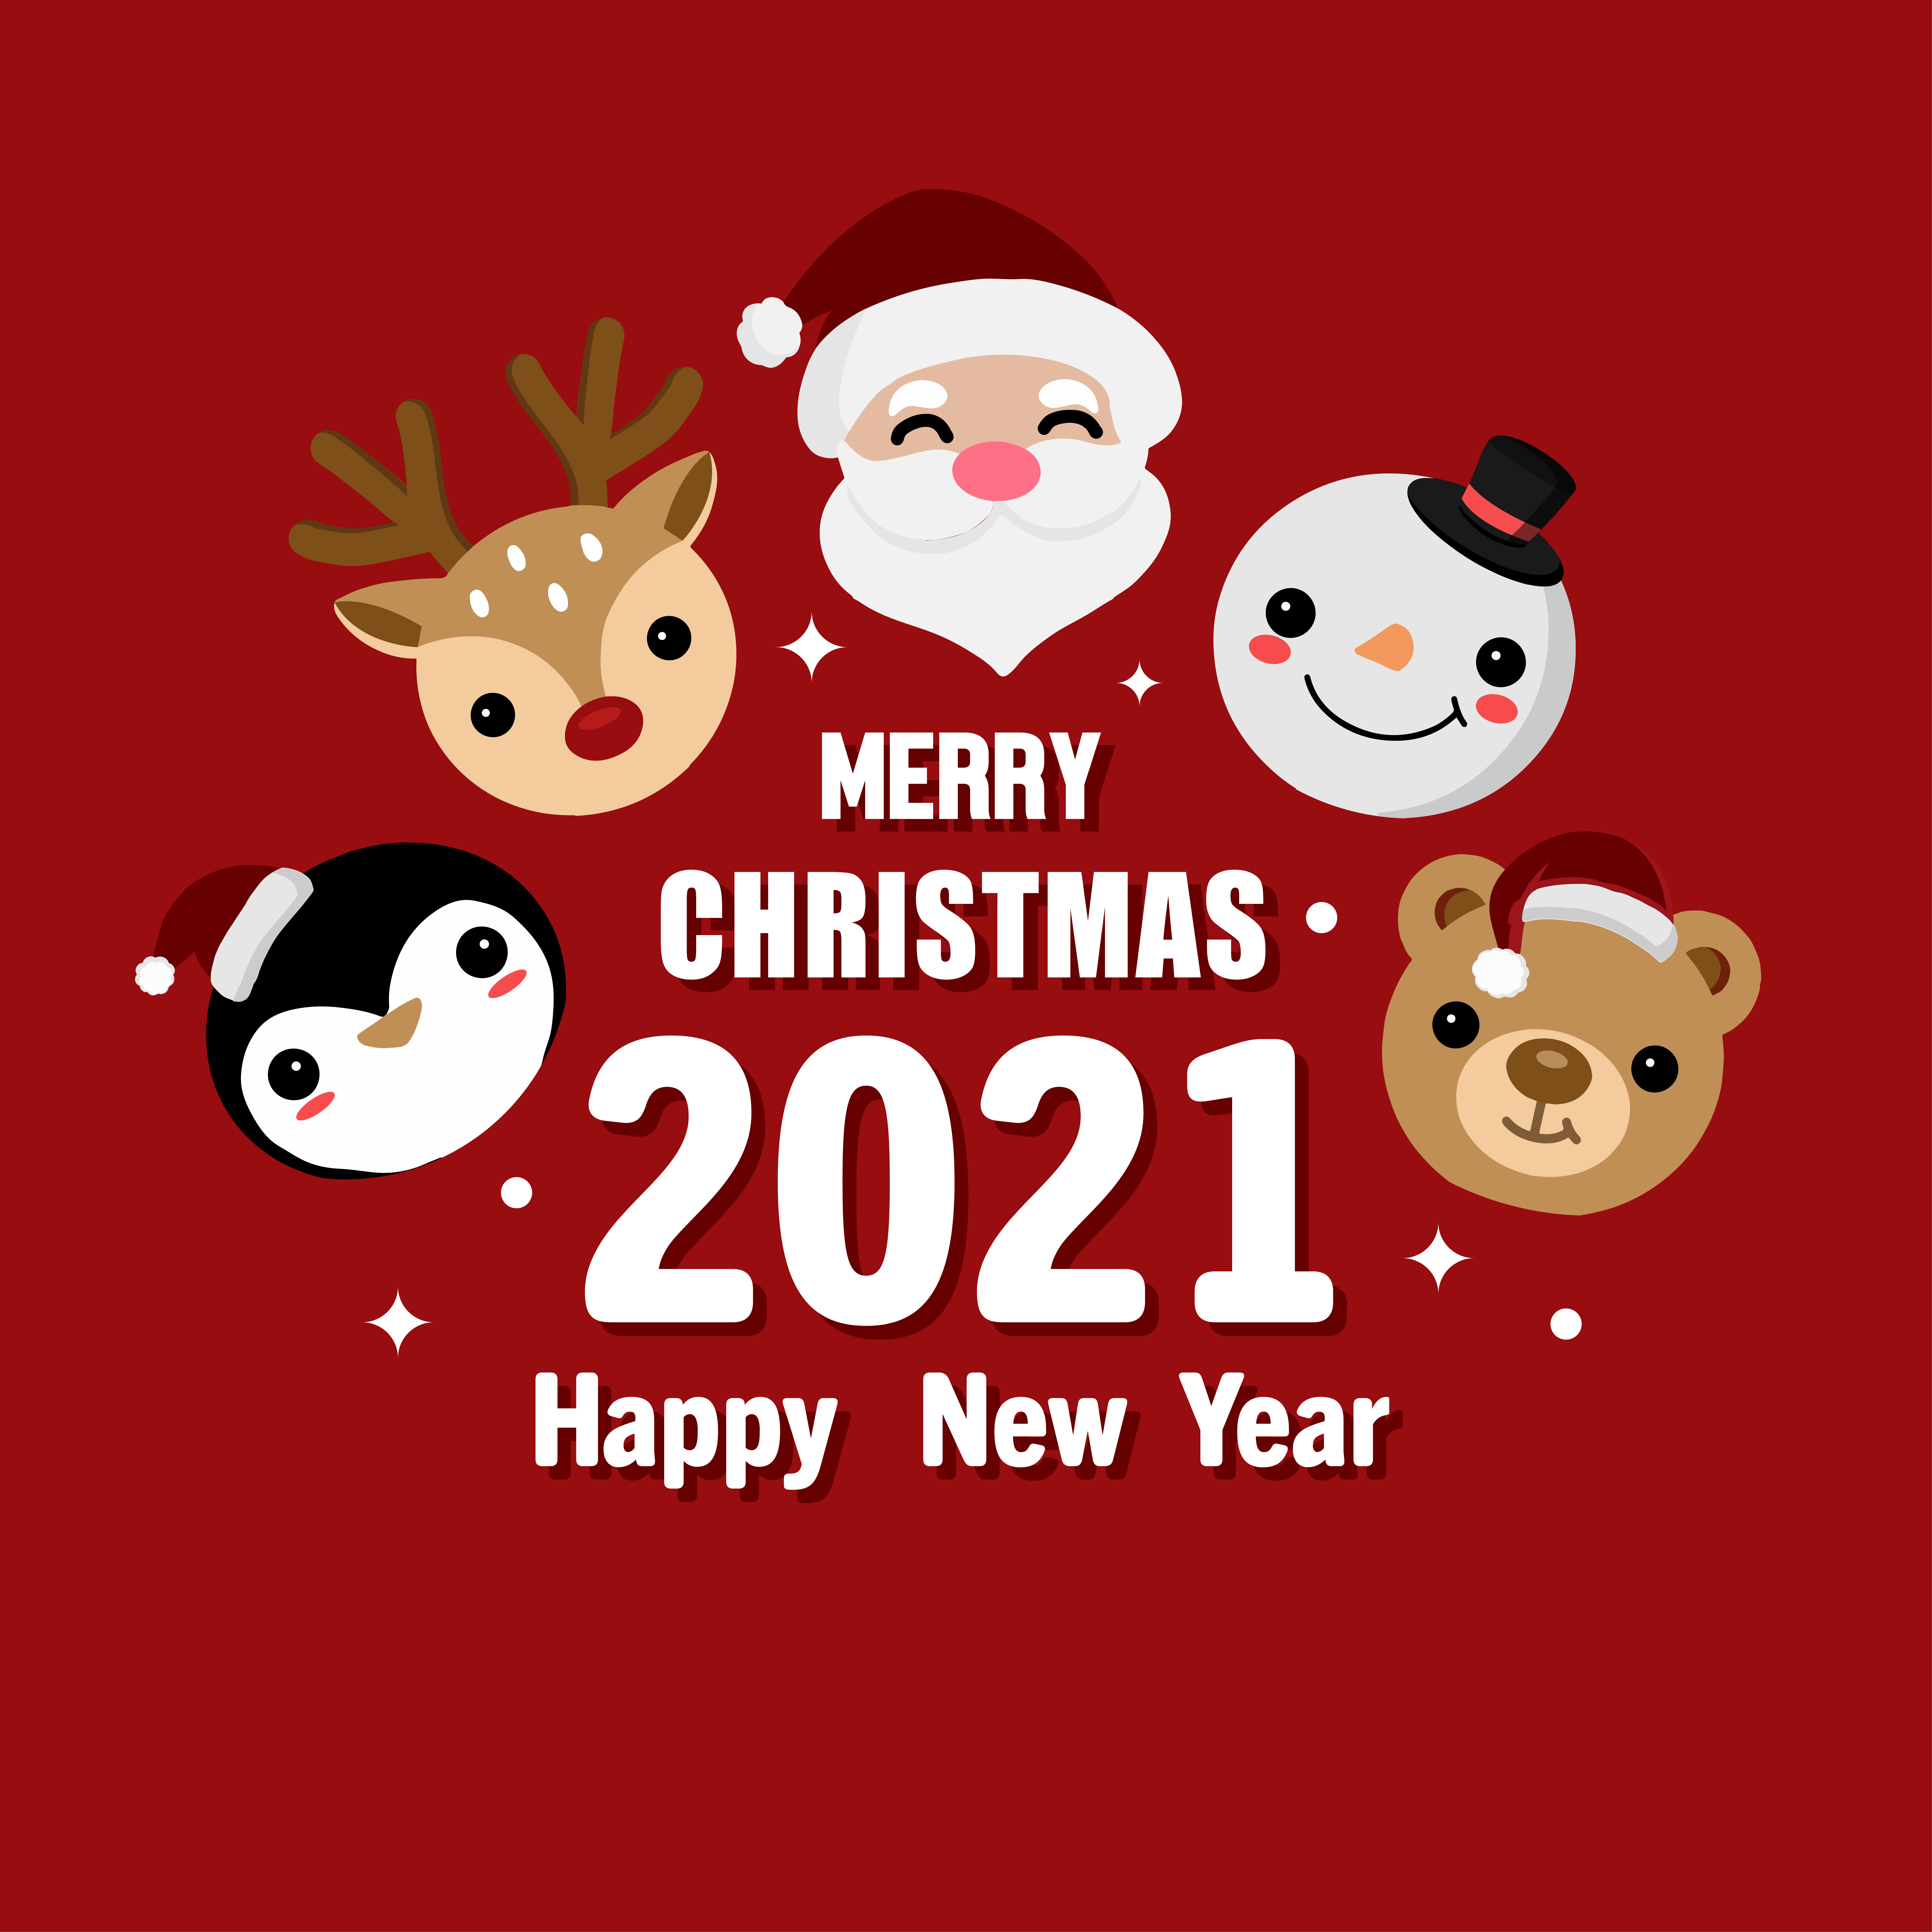 Merry Christmas 2021 Clipart Happy New Year 2021 And Merry Christmas Wishes Merry Christmas And Happy 2021 Greetings Christmas And New Year Greeting Card